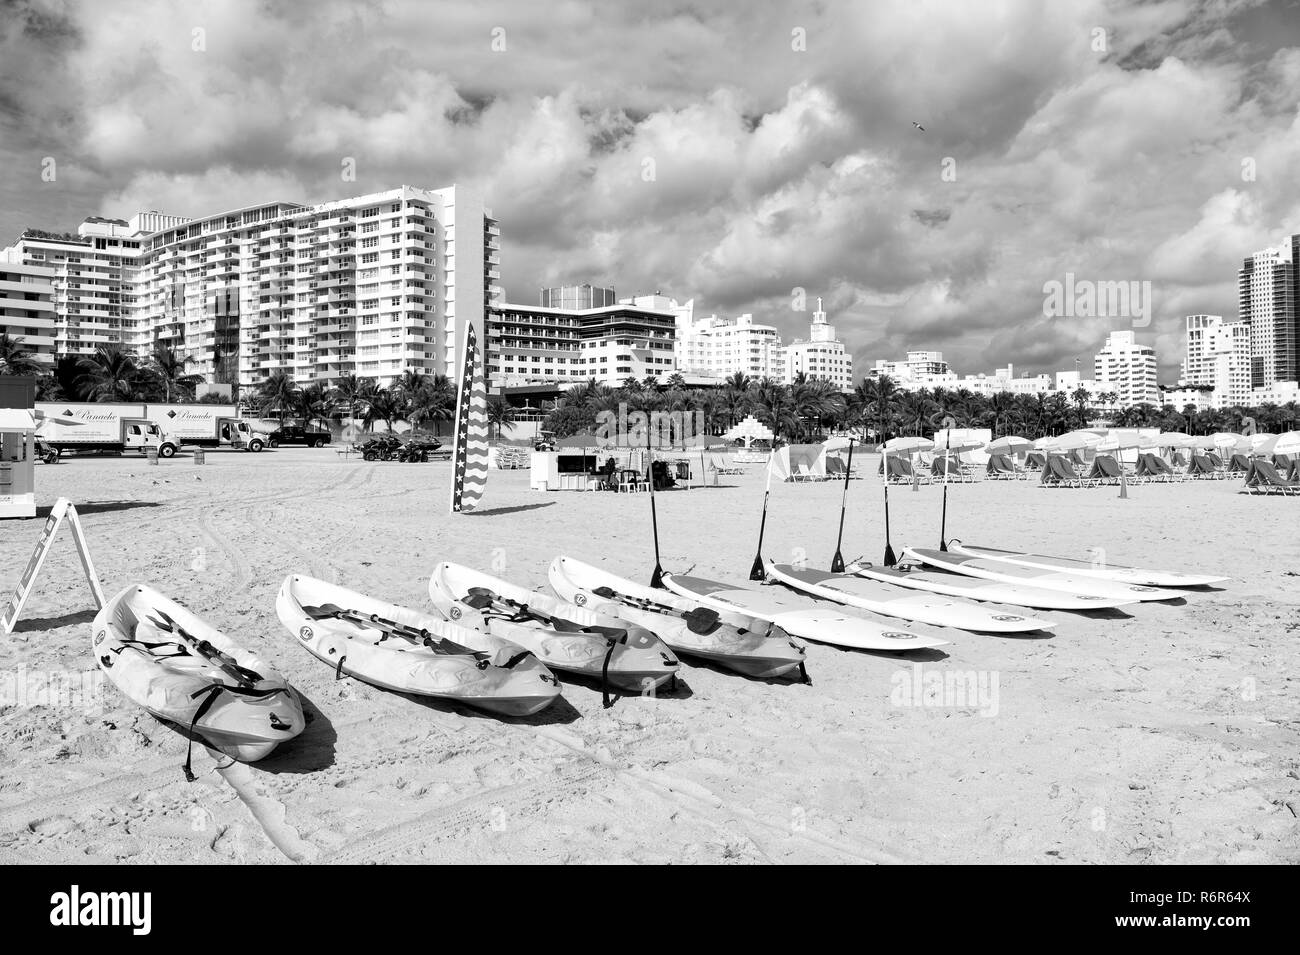 Miami, south beach. kayak and surfboards with paddles on sand, sandy beach, tropical palm resort, sunny day on city skyline clouds on blue sky. Idyllic summer vacation. Active lifestyle. Water sports - Stock Image